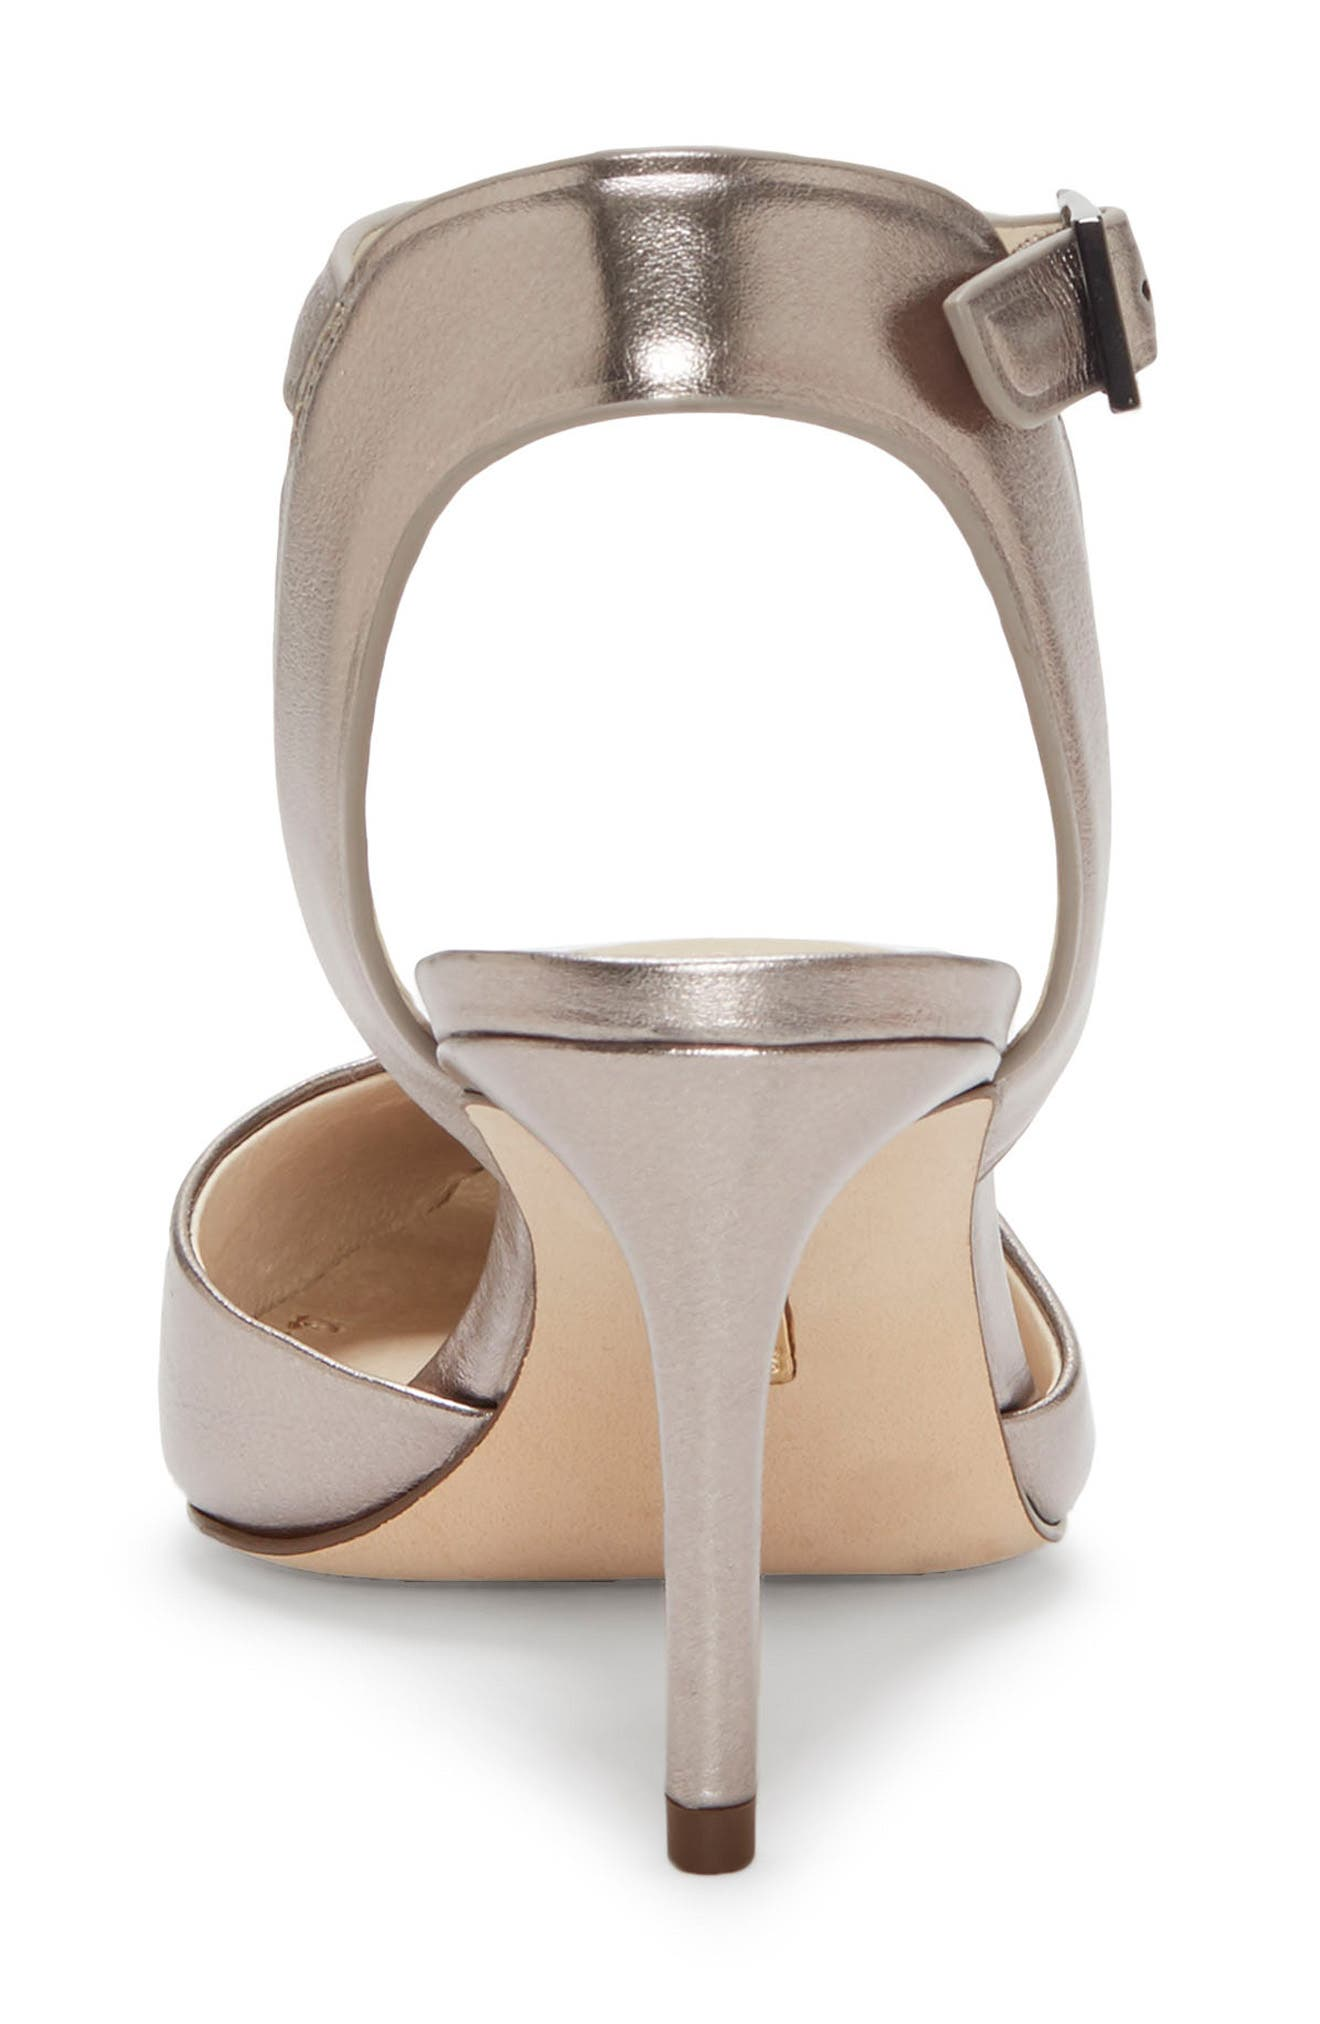 Kota Ankle Strap Pump,                             Alternate thumbnail 7, color,                             PETROL METALLIC